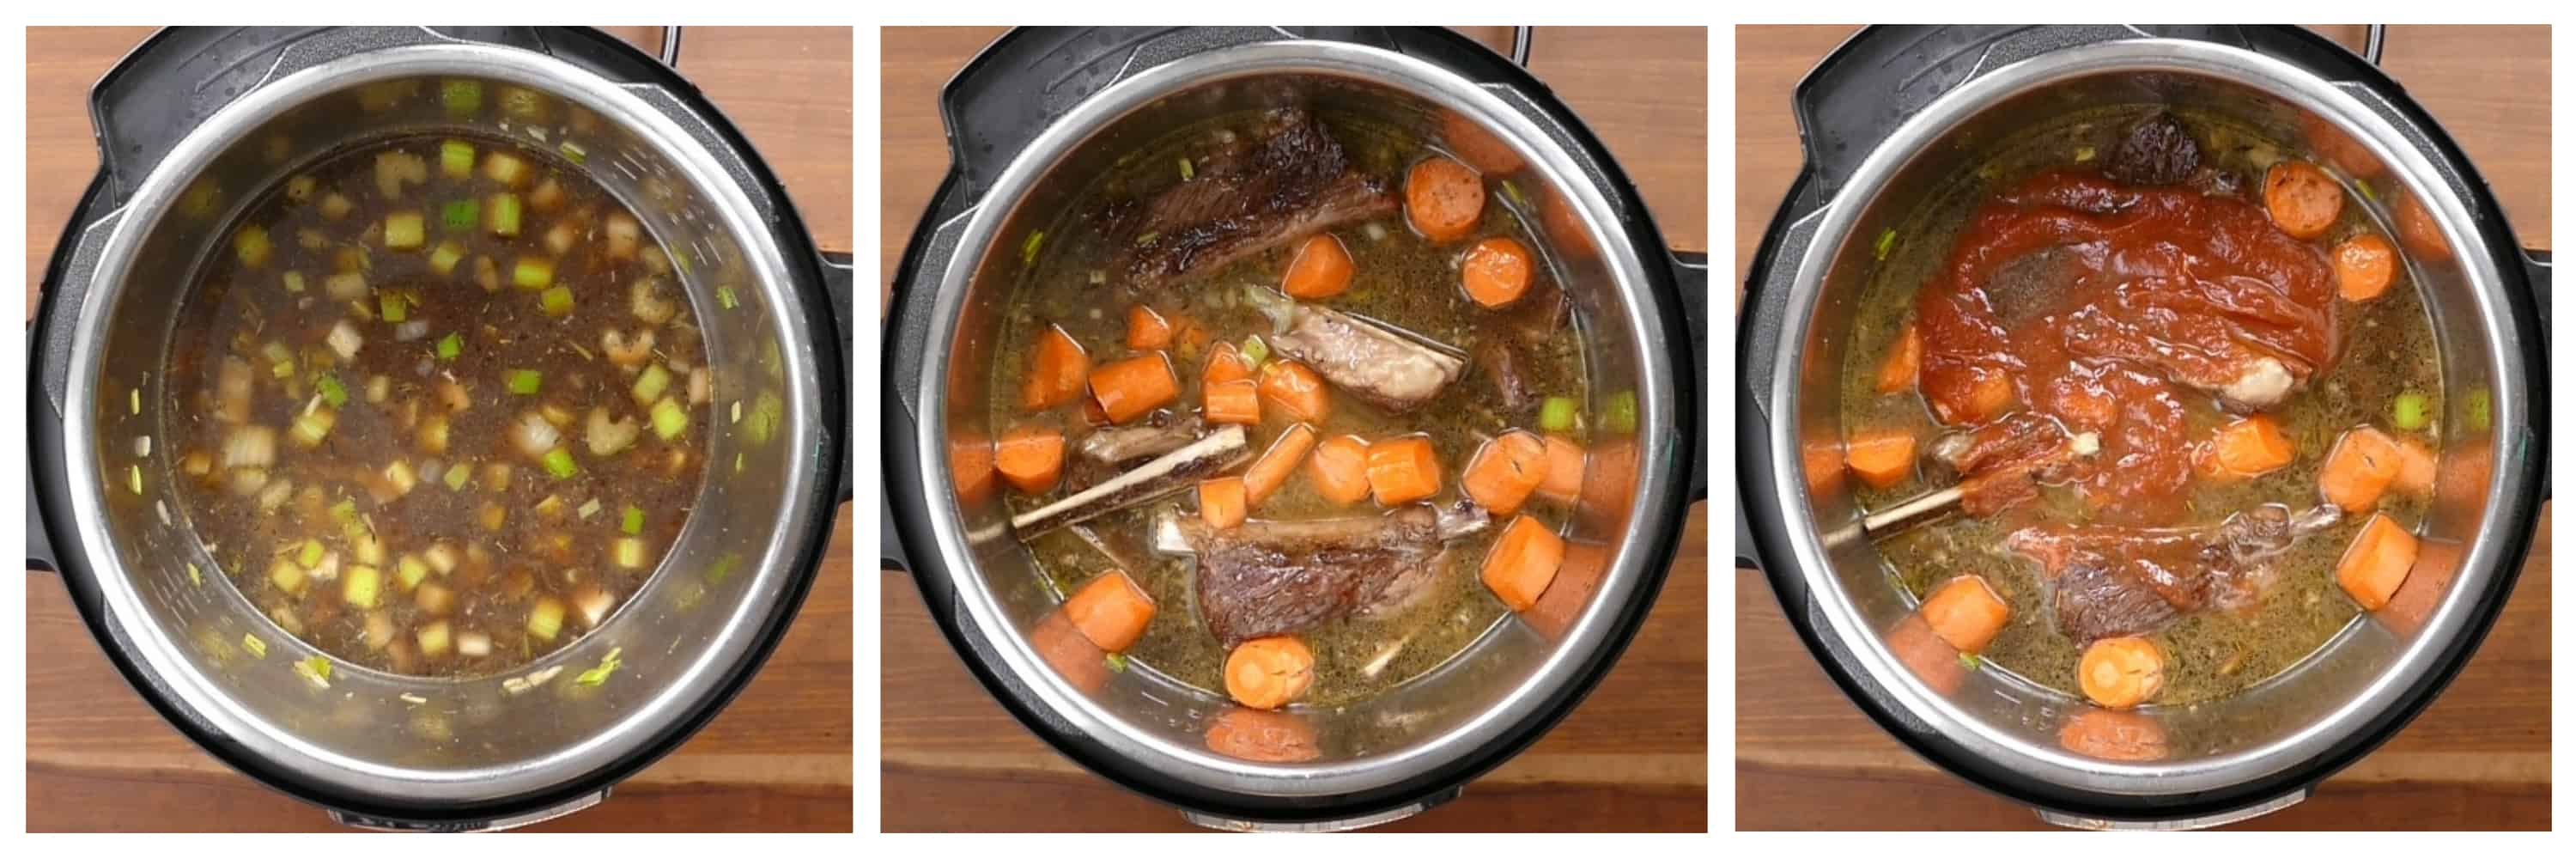 Instant Pot Short Ribs Braised in Red Wine Instructions 4 - liquids added, carrots and short ribs, tomato paste - Paint the Kitchen Red